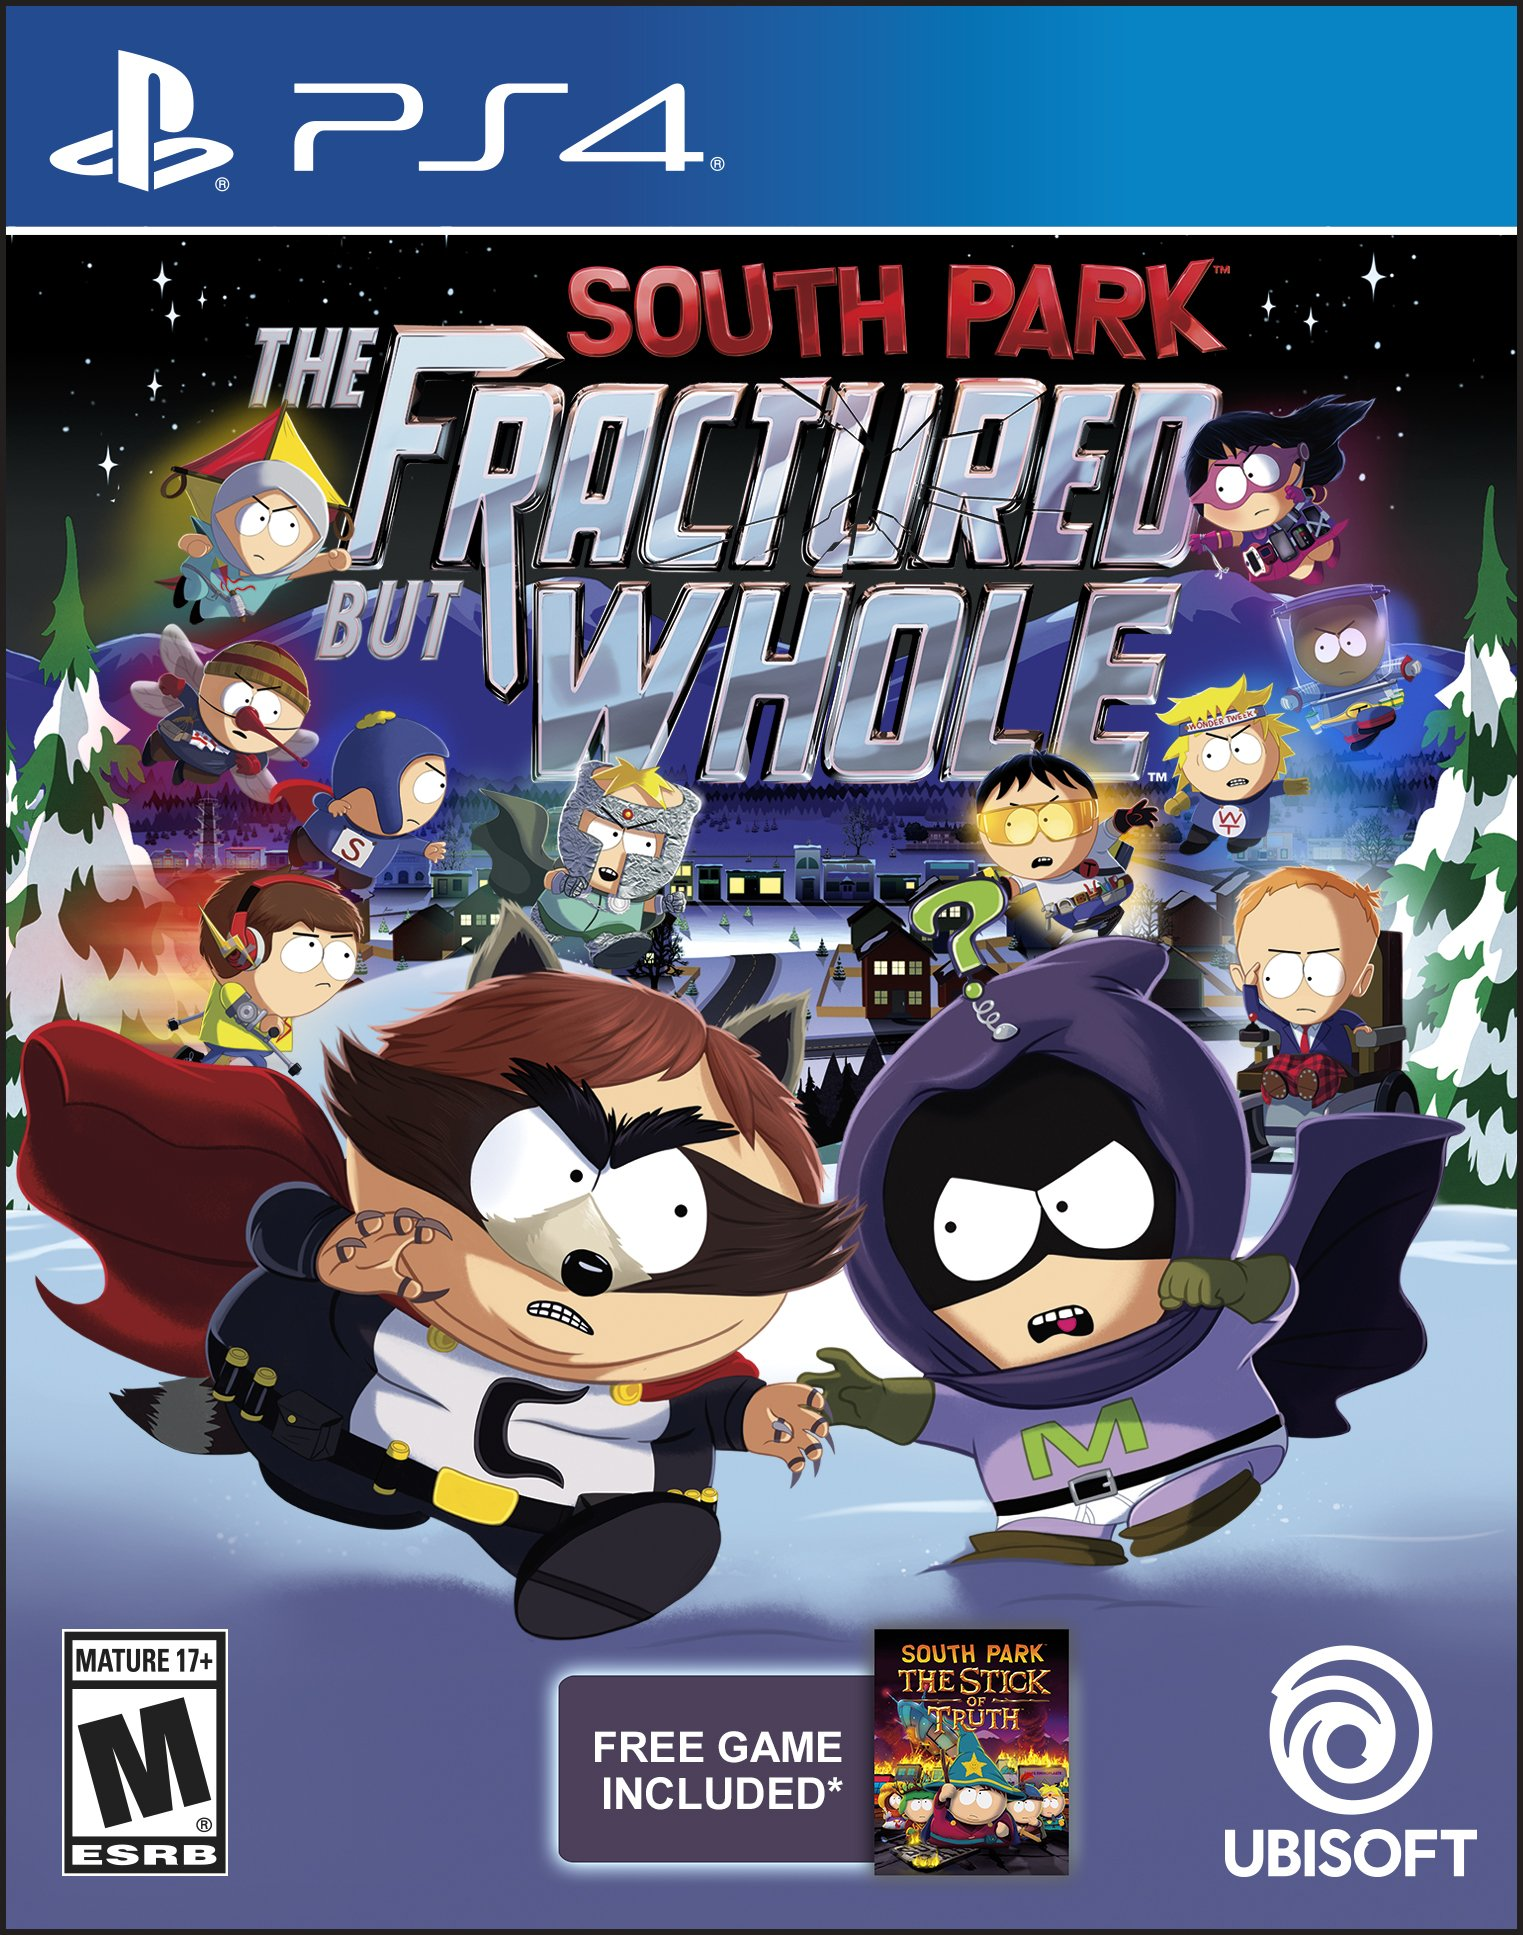 South Park Fractured Whole Playstation 4